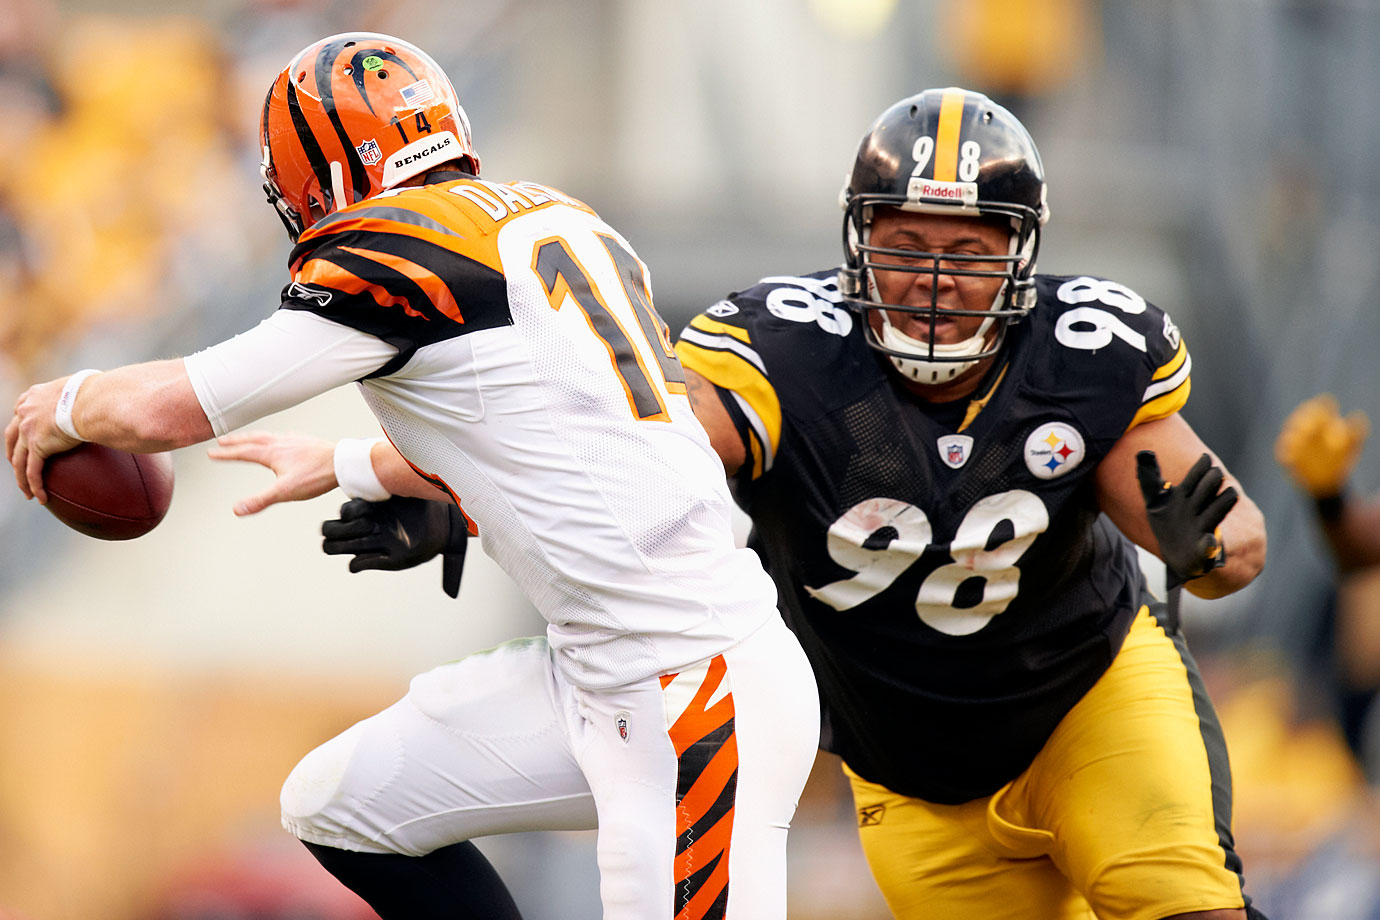 Selected in the first round out of Texas, Hampton immediately became the ideal nose tackle for Pittsburgh's 3–4 defense and really came into prominence when Dick LeBeau became the team's defensive coordinator in 2004.  Not only could Hampton hold the point against double teams so that others could succeed, he was also a sneaky-fast coverage man in LeBeau's zone blitzes. He did those jobs well enough to make five Pro Bowls in his career.